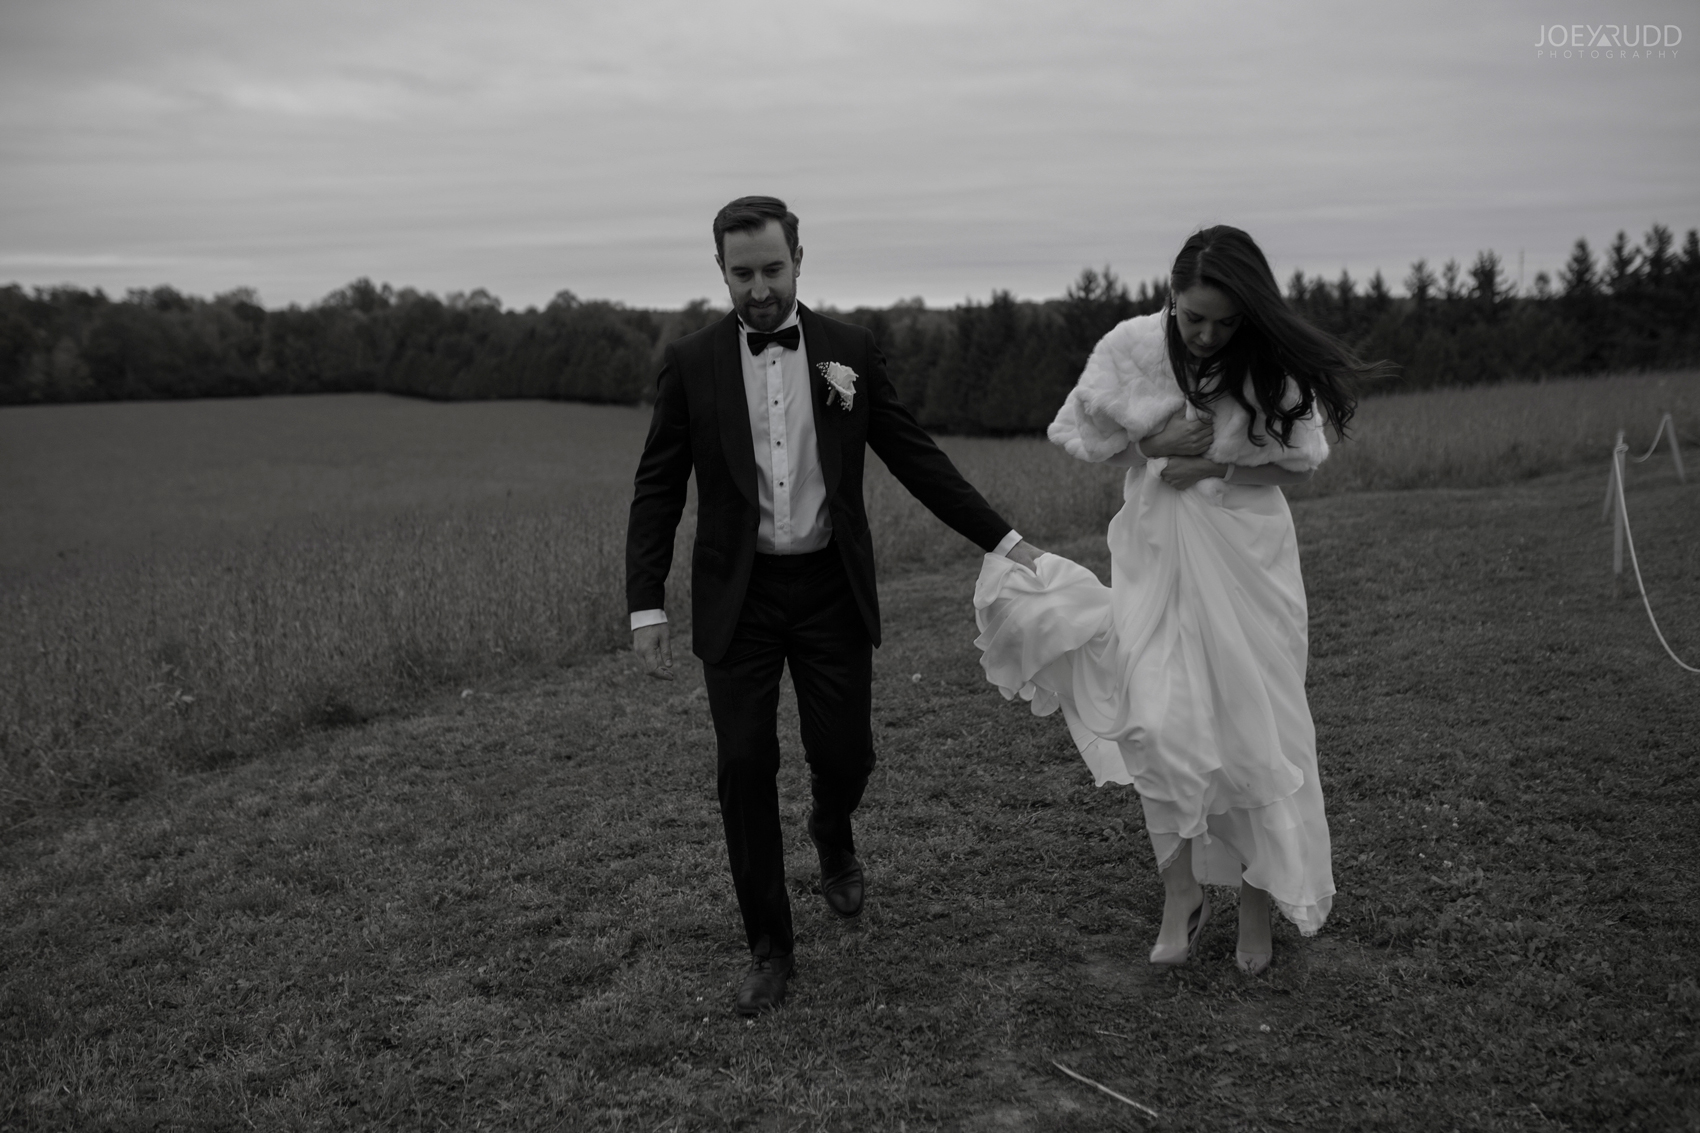 2018_10_07---Aksana-&-Mark-714TopRight.jpgEvermore Wedding, Evermore Wedding and Events, Ottawa Wedding, Almonte Wedding, Ottawa Photographer, Wedding Photography, Wedding Photographer, Joey Rudd Photography, Farm Wedding, Rustic Wedding, Barn Wedding Venue, Wedding Venue, Ottawa Wedding Venue, Almonte Riverside Inn, Candid, field wedding photo, walking together